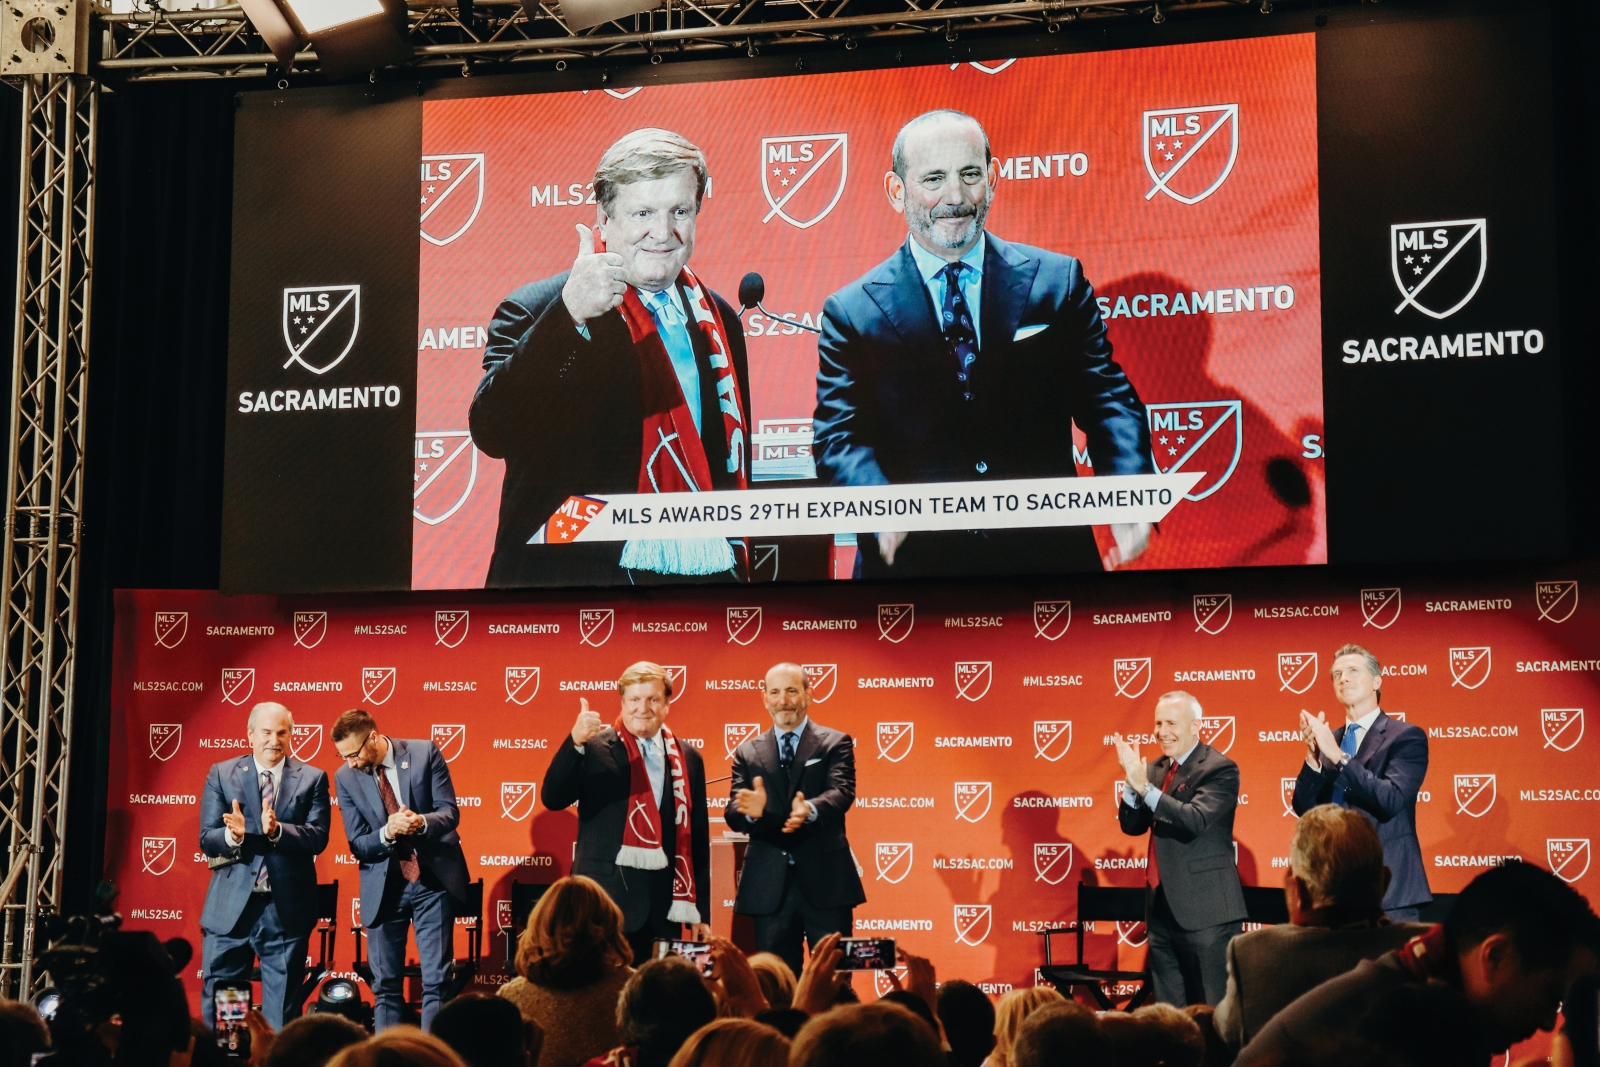 From left, Republic FC lead investor Ron Burkle, Major League Soccer commissioner Don Garber and Sacramento Mayor Darrell Steinberg celebrate as the Republic is announced as MLS's newest team on Oct. 21. (Photo courtesy of Downtown Sacramento Partnership)